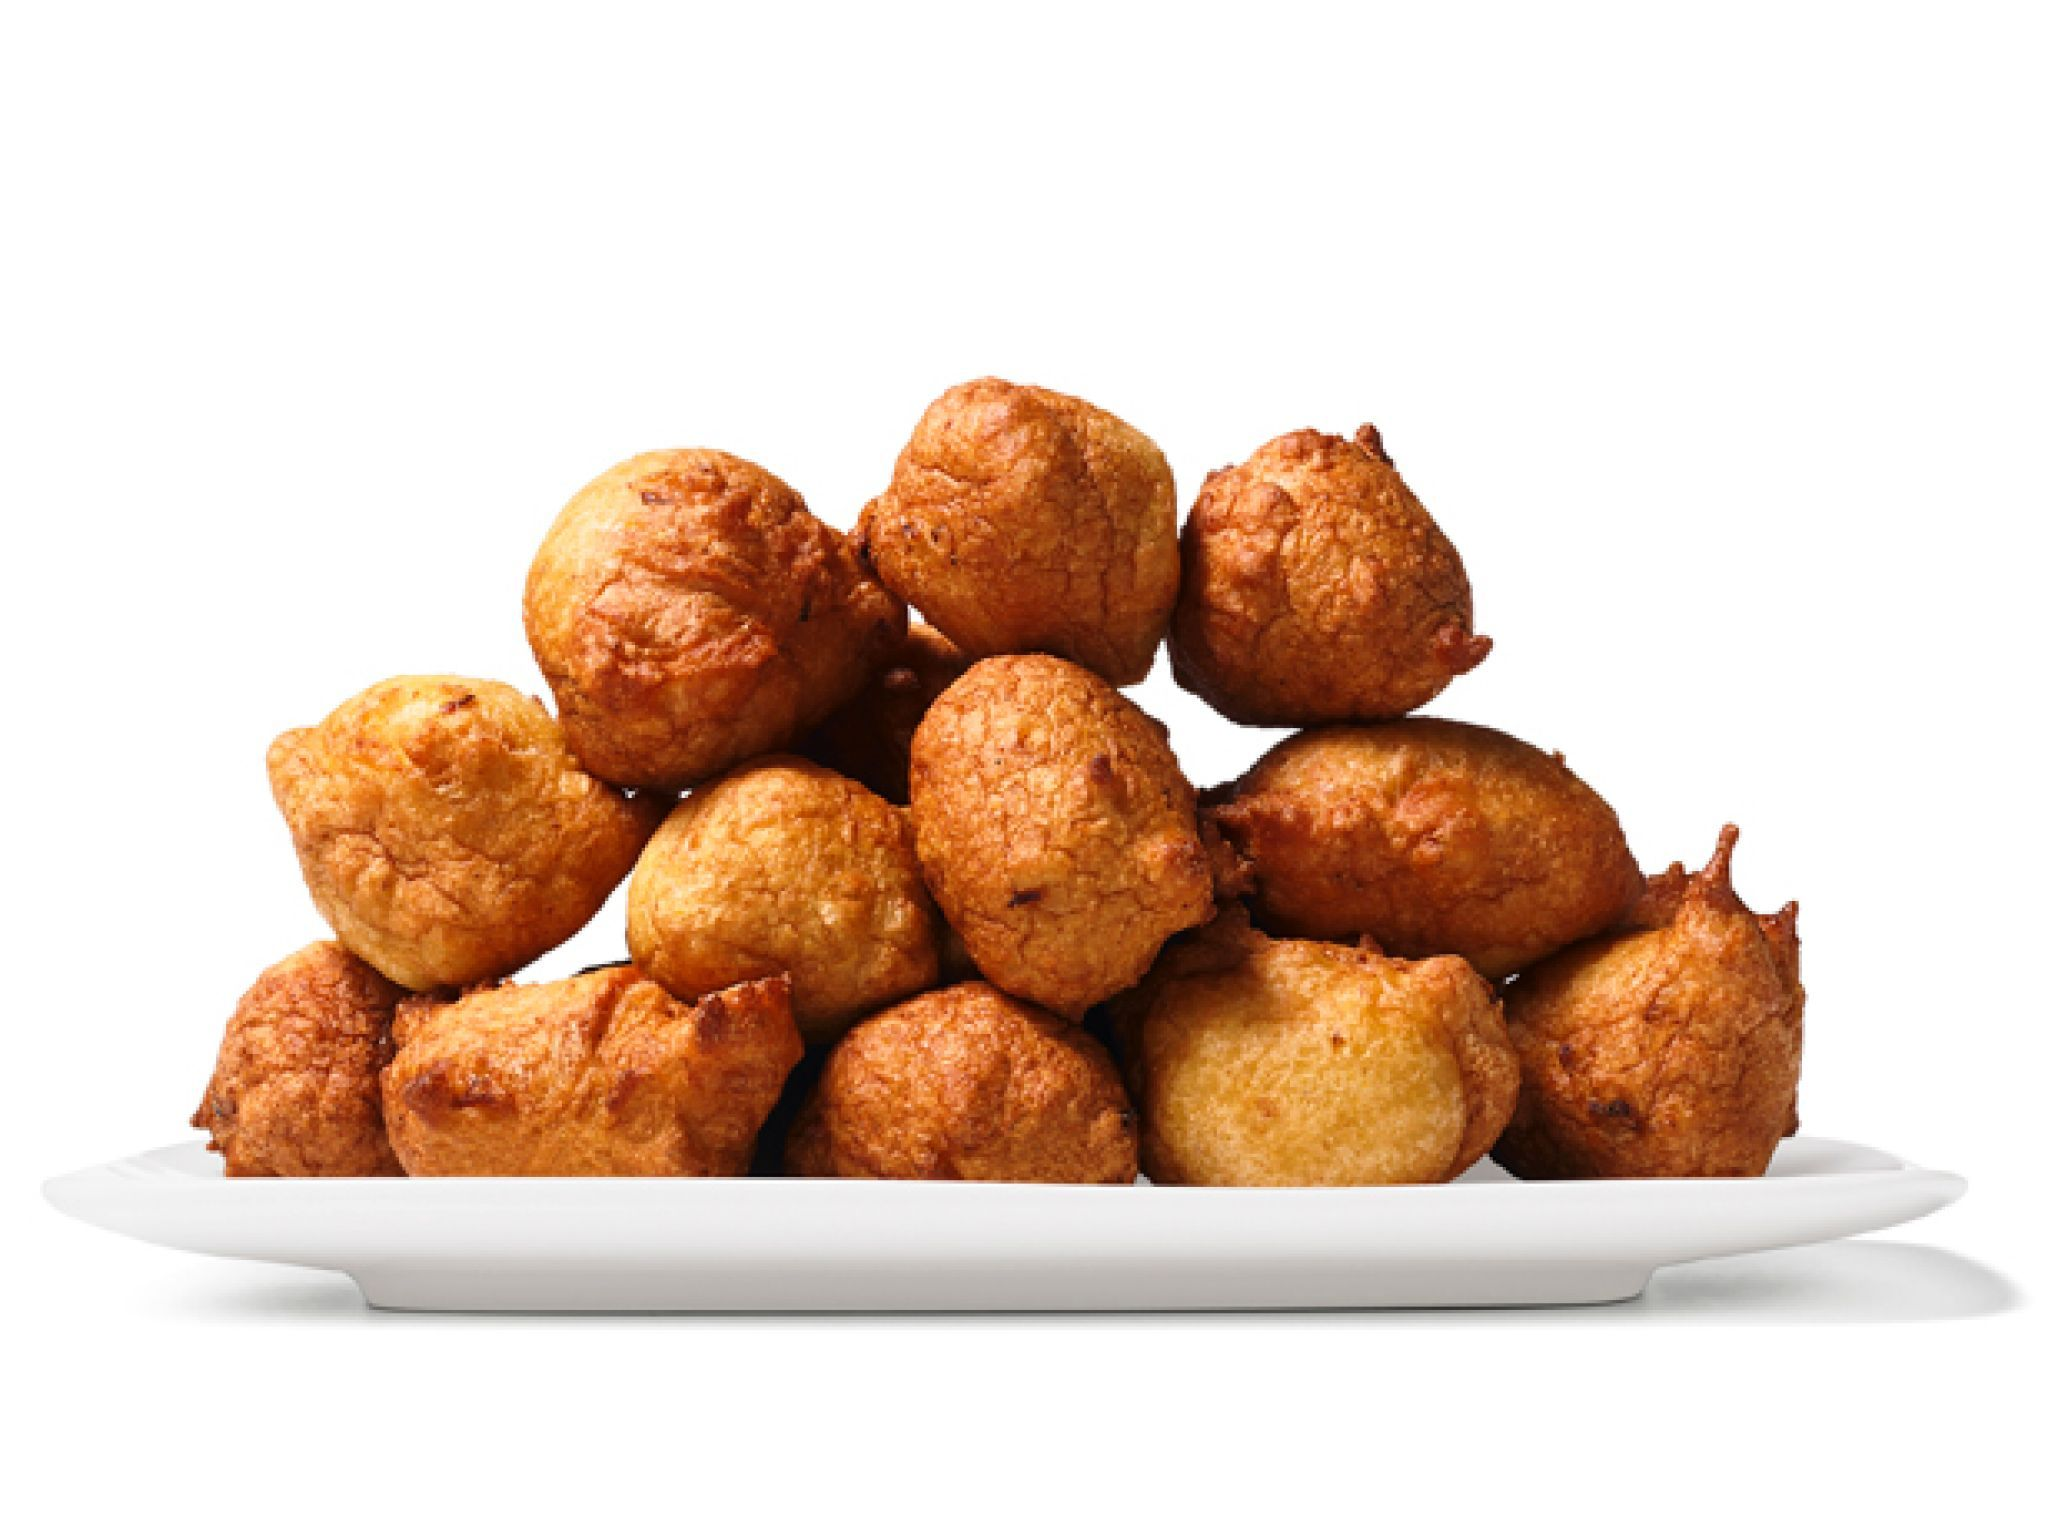 Almost Famous Hushpuppies Recipe With Images Food Network Recipes Hush Puppies Recipe Food